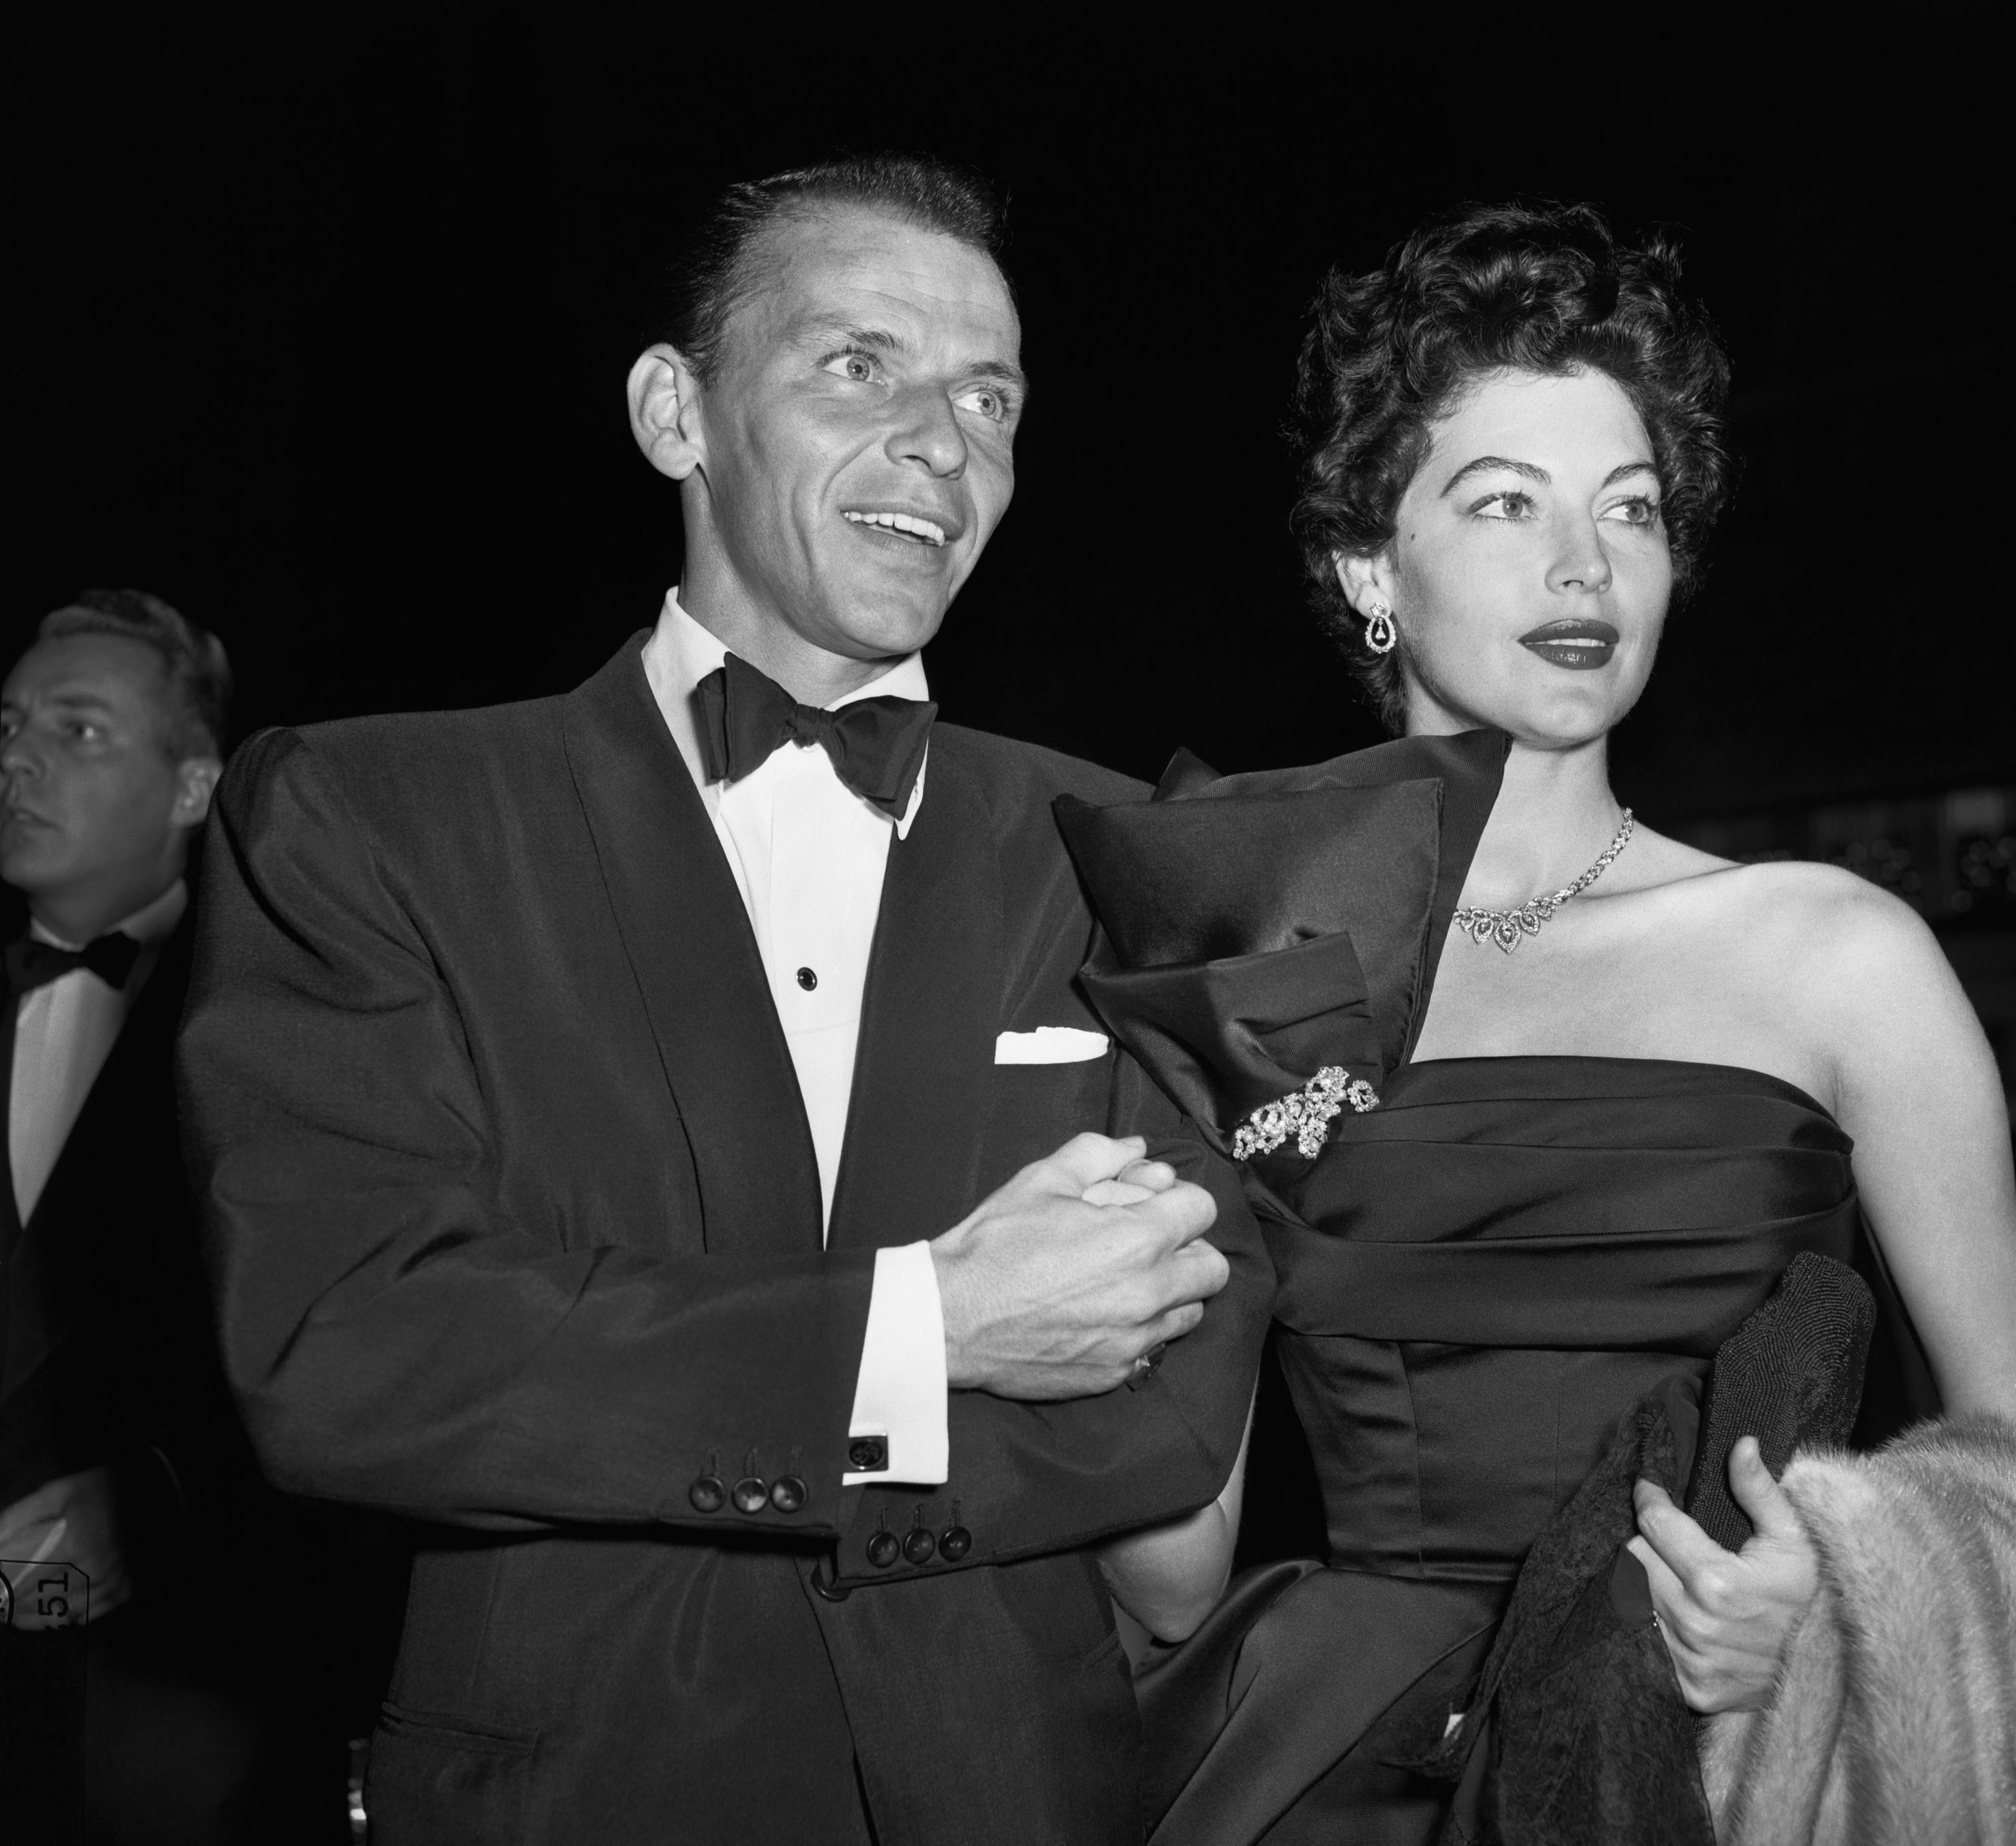 First public appearance for Frank Sinatra and Ava Gardner since Sinatra's wife granted him a divorce